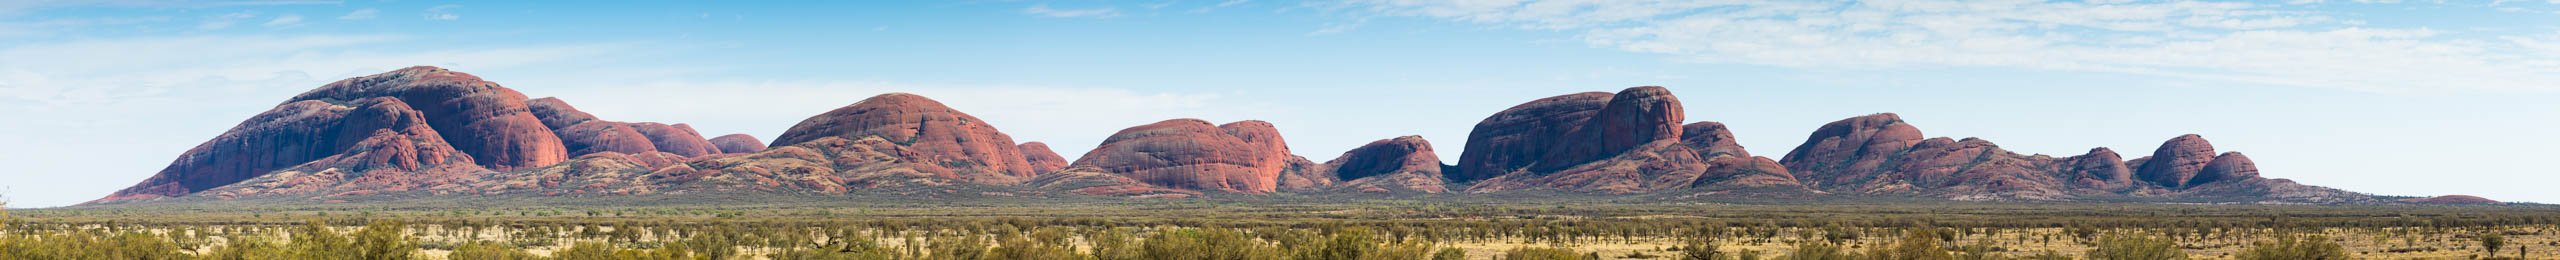 The Olgas, central Australia